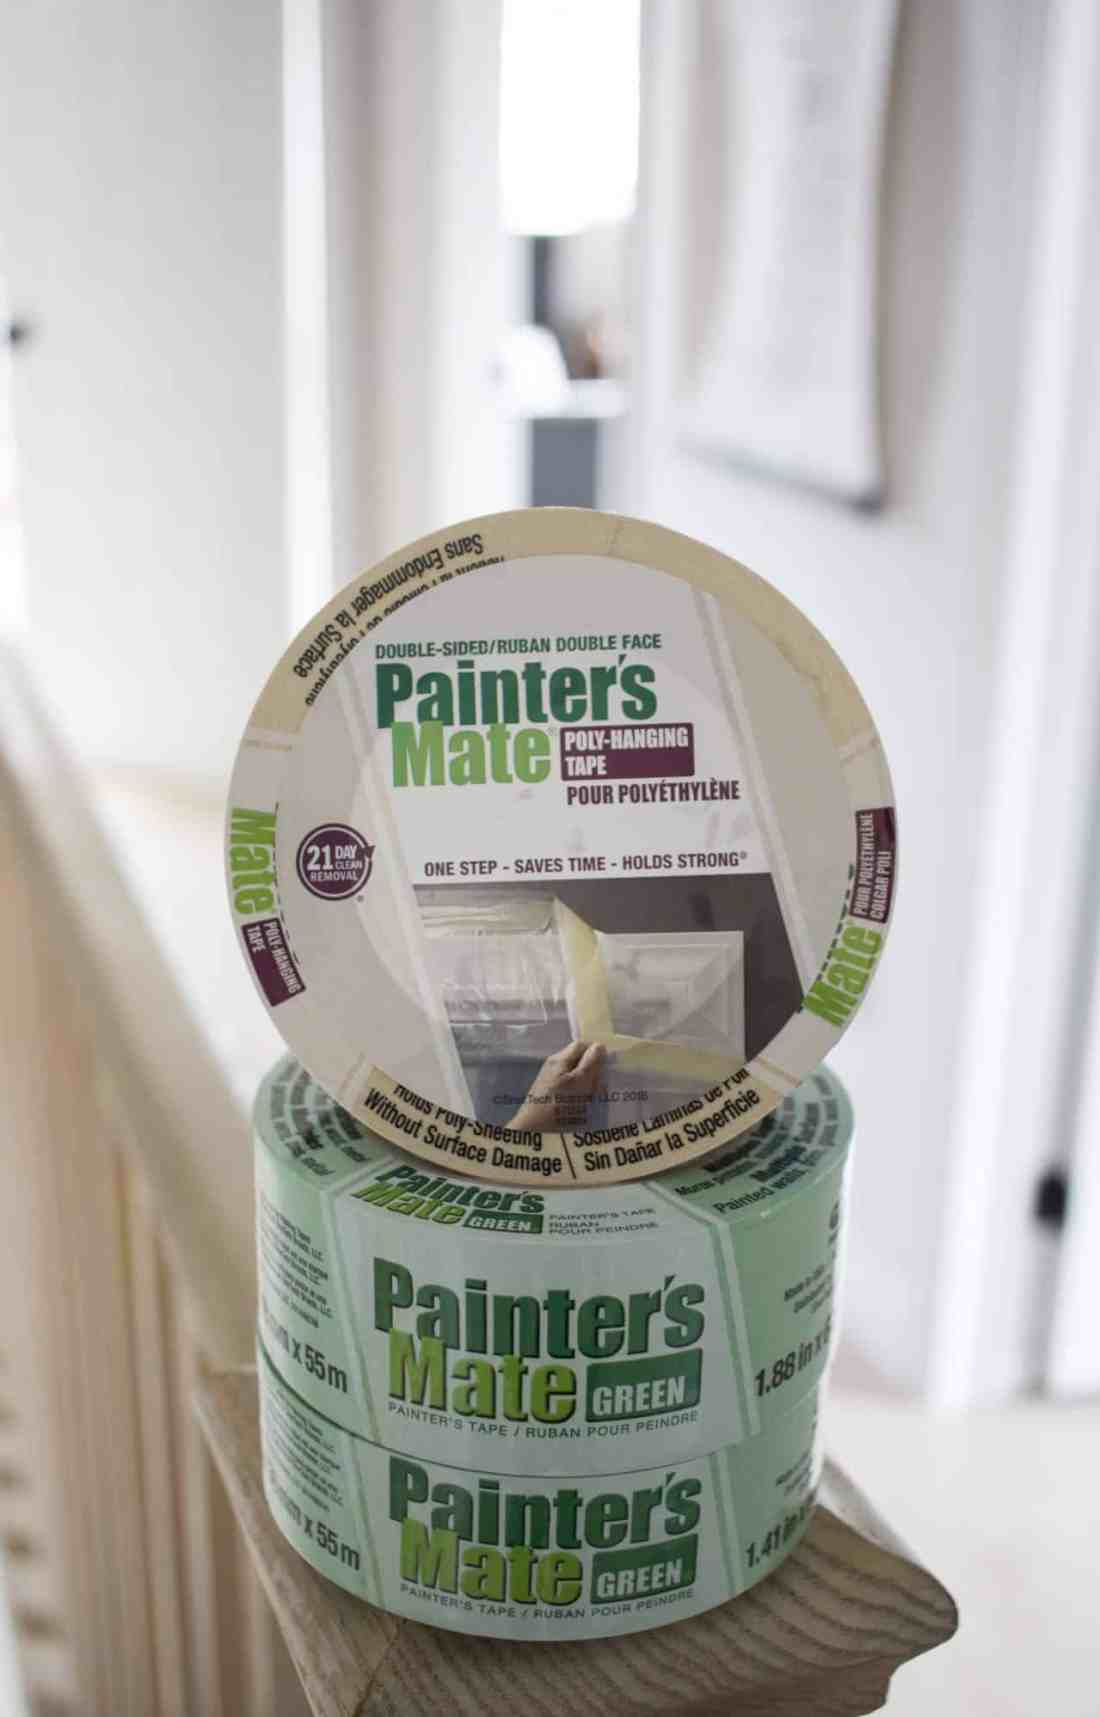 Painter's Mate Green